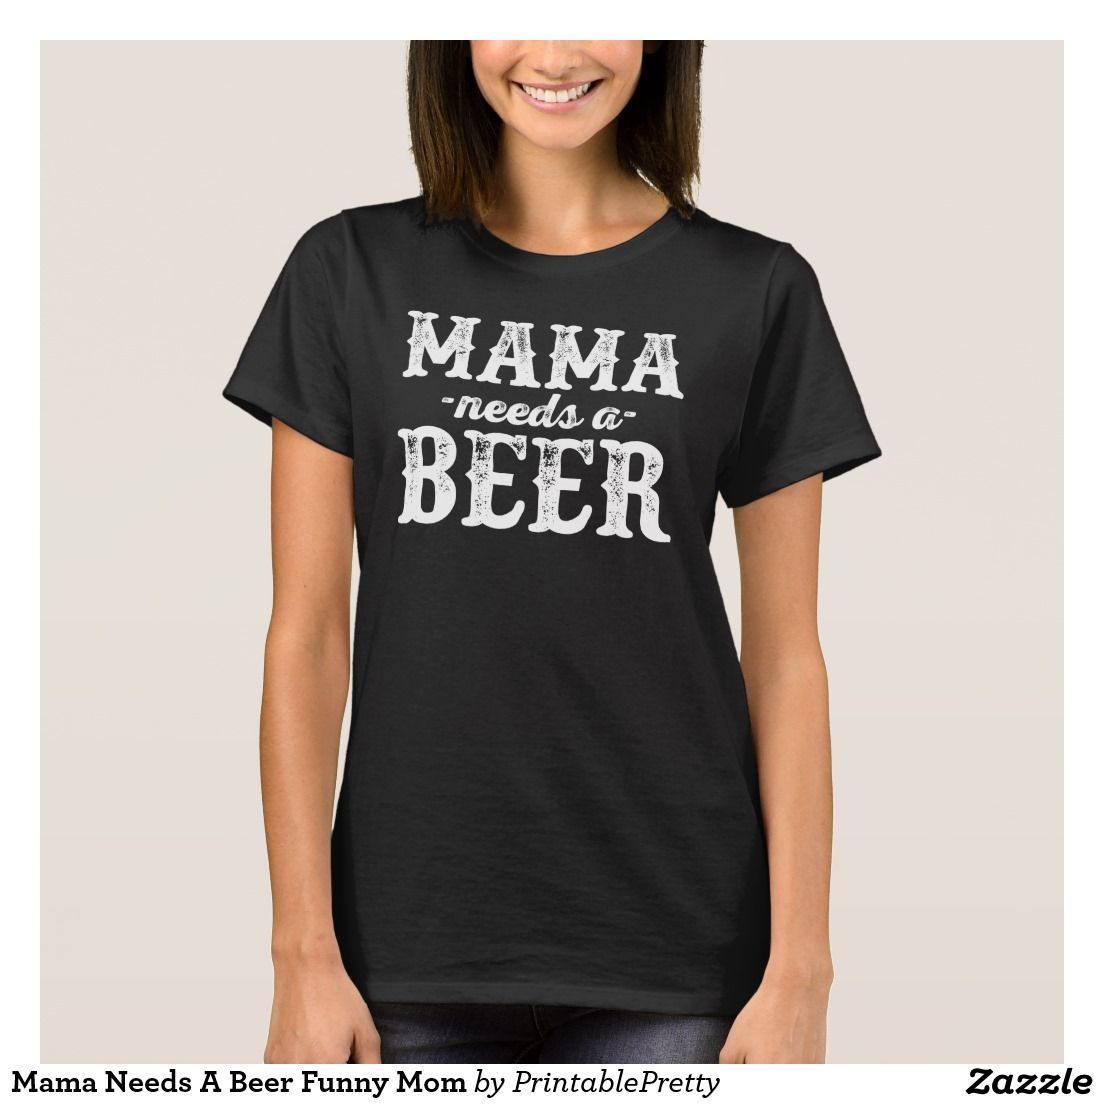 Zazzle t shirt design size - Mama Needs A Beer Funny Mom Quote Sayings Graphic Tee Shirt Design We Offer A Great